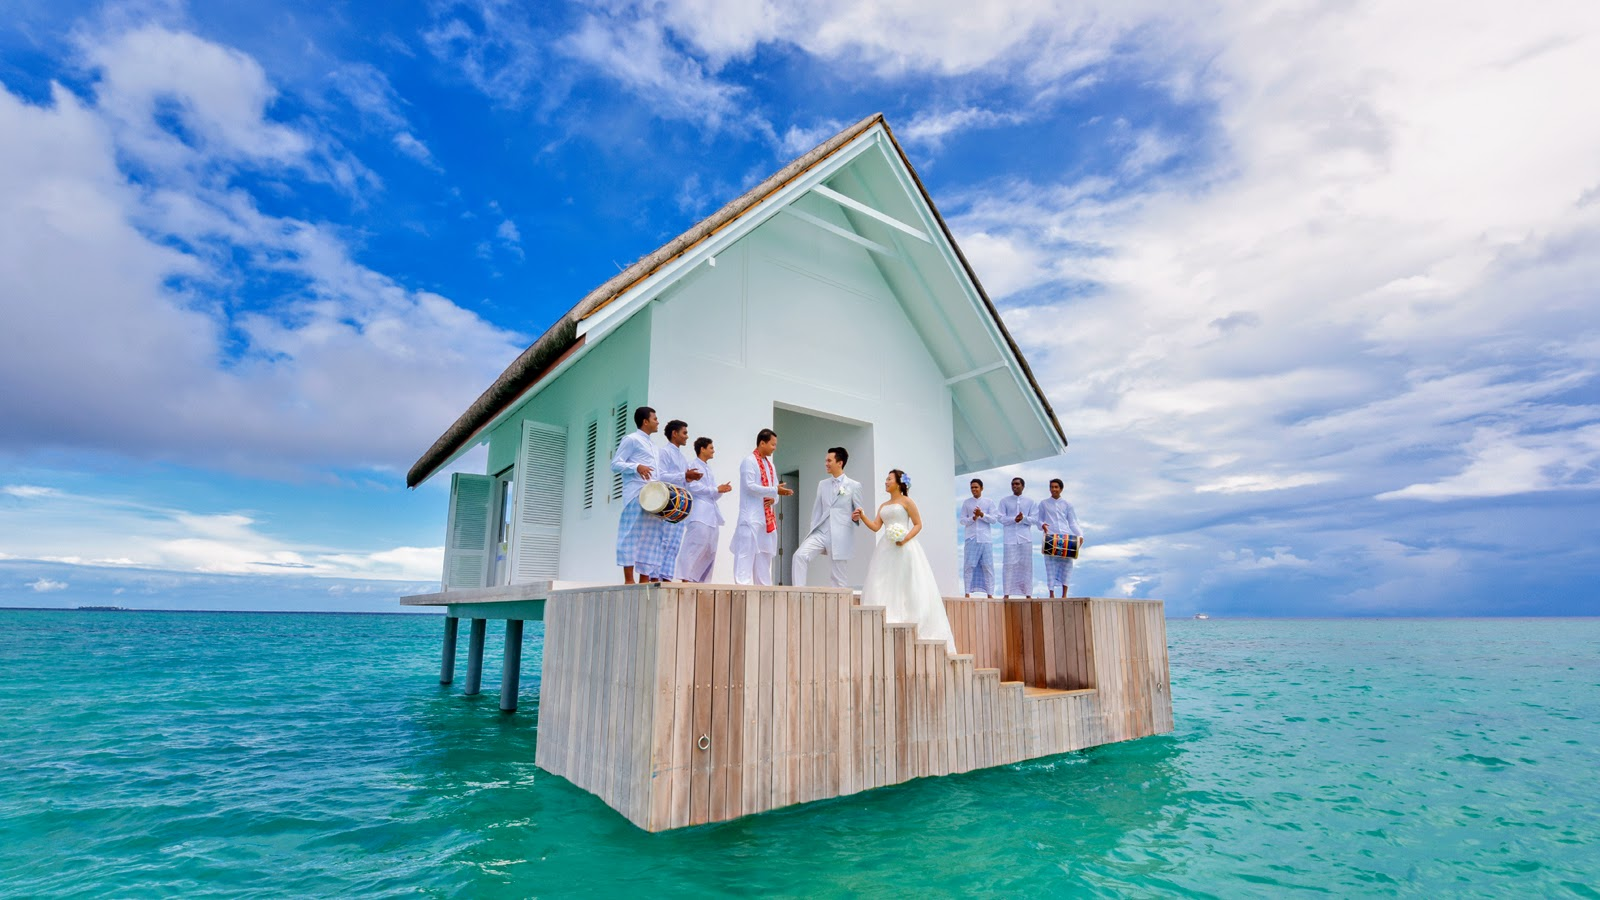 An Overwater Wedding Pavilion afloat in the UNESCO Biosphere Preserve, Four Seasons Resort Maldives at Landaa Giraavaru